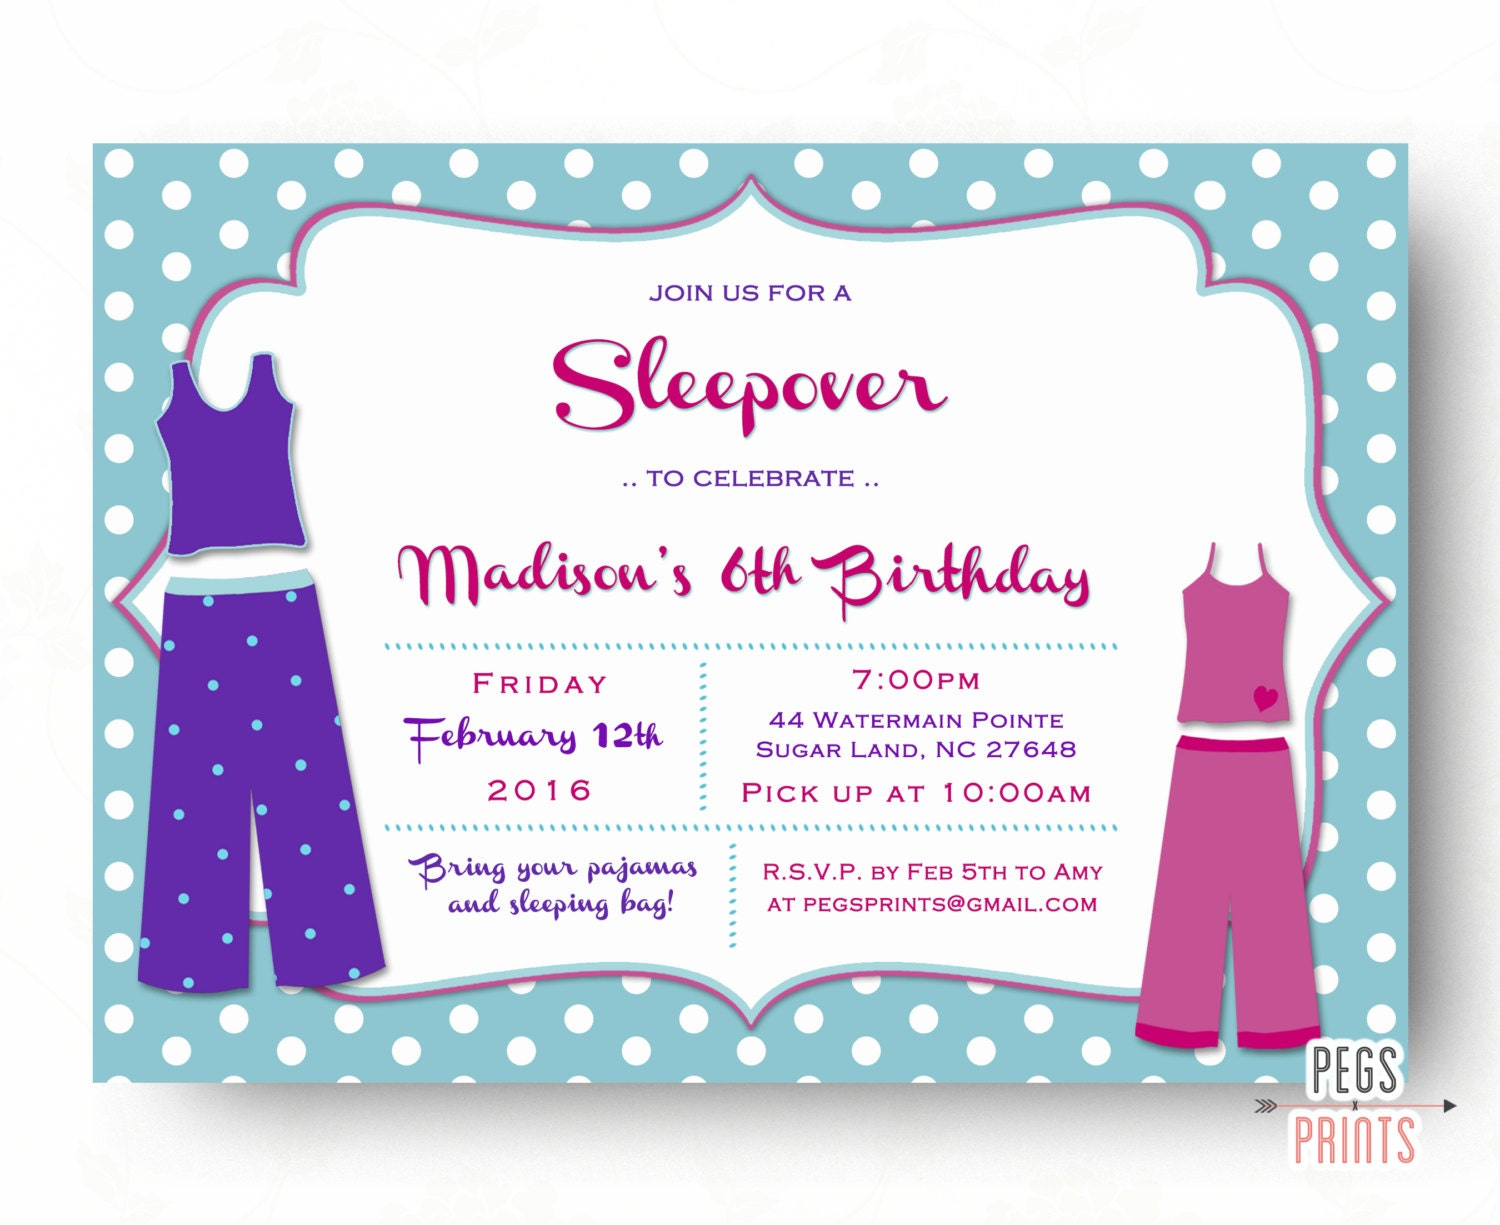 Sleepover Invitation Printable Pajama Party Invitation